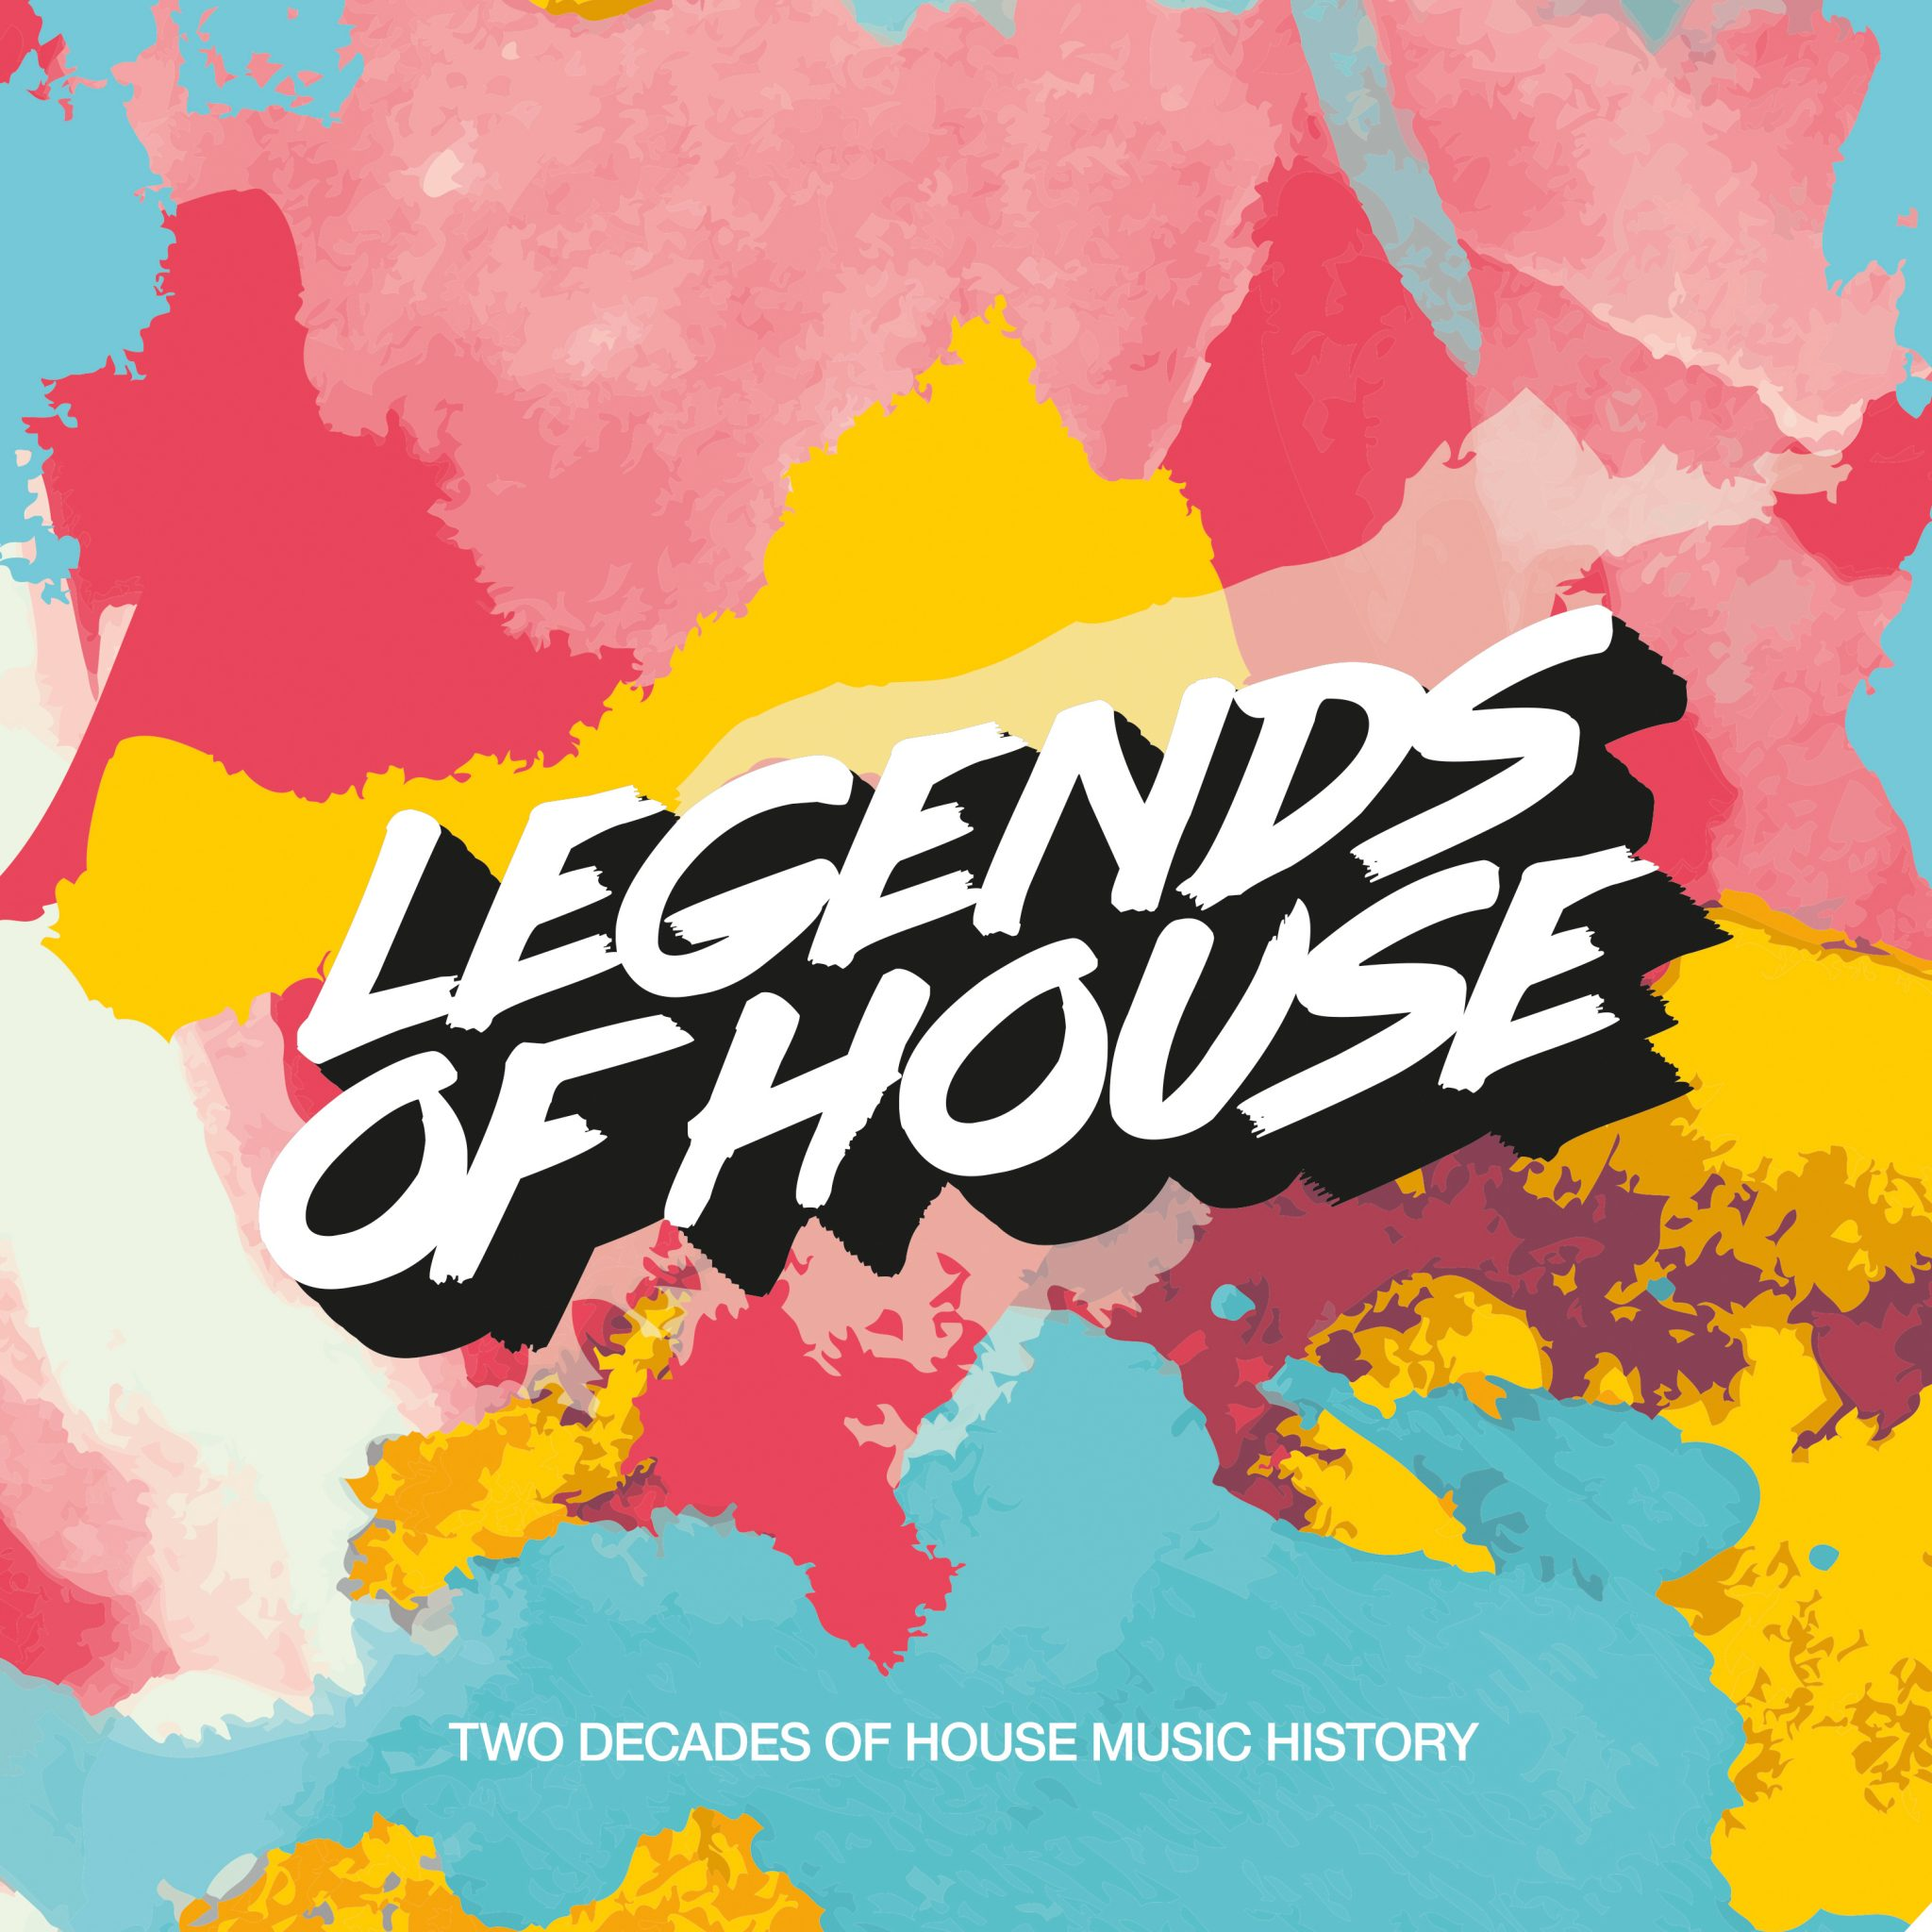 Legends of House – Compiled And Mixed by Milk & Sugar Release Date: 12.05.2017